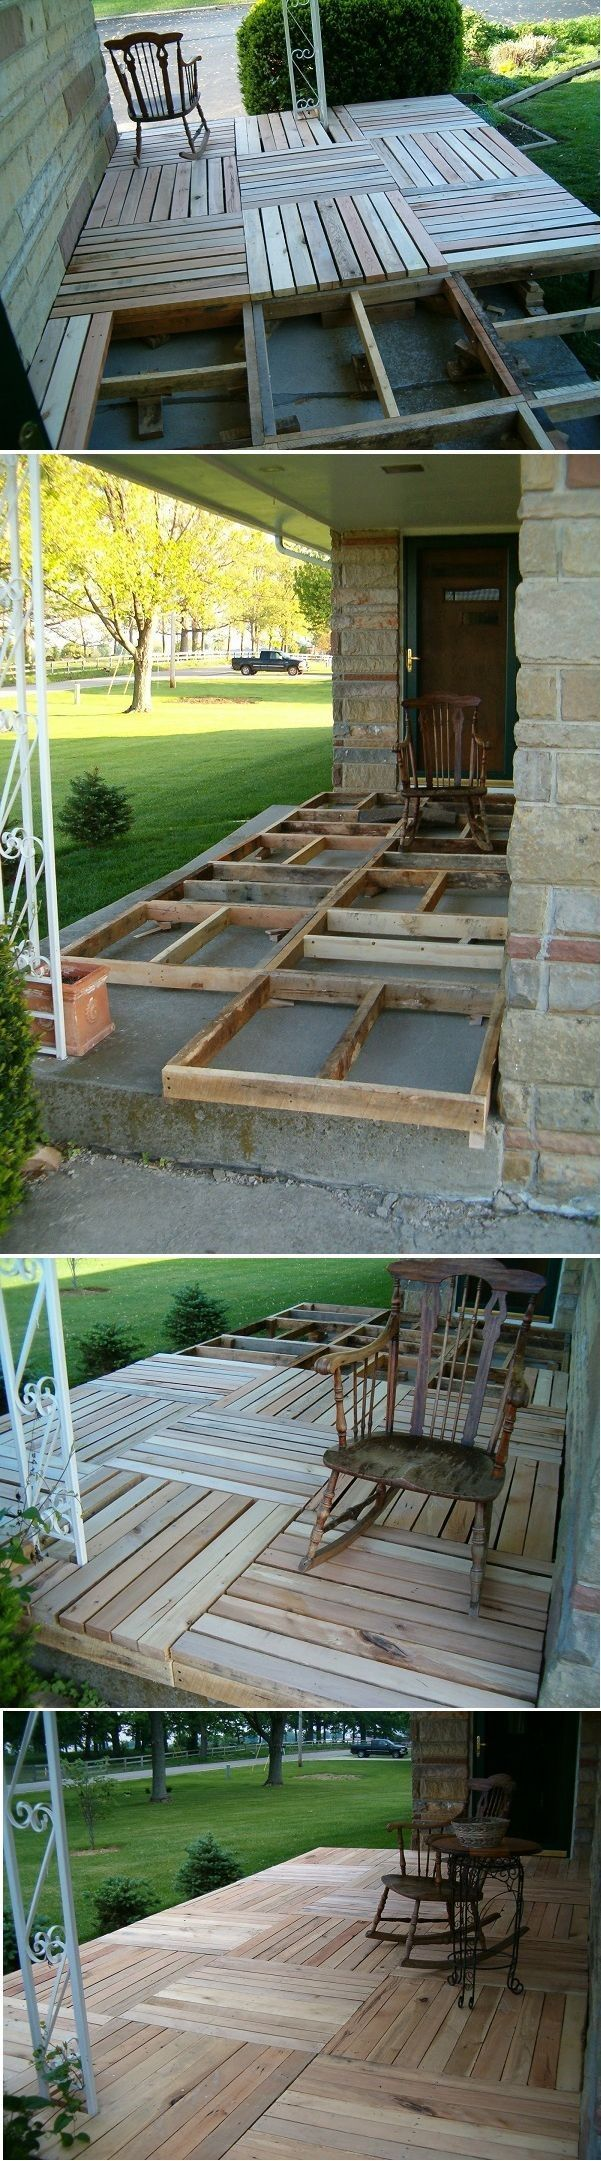 15 Excellent DIY Backyard Decoration & Outside Redecorating Plans 9 Home Sweet…